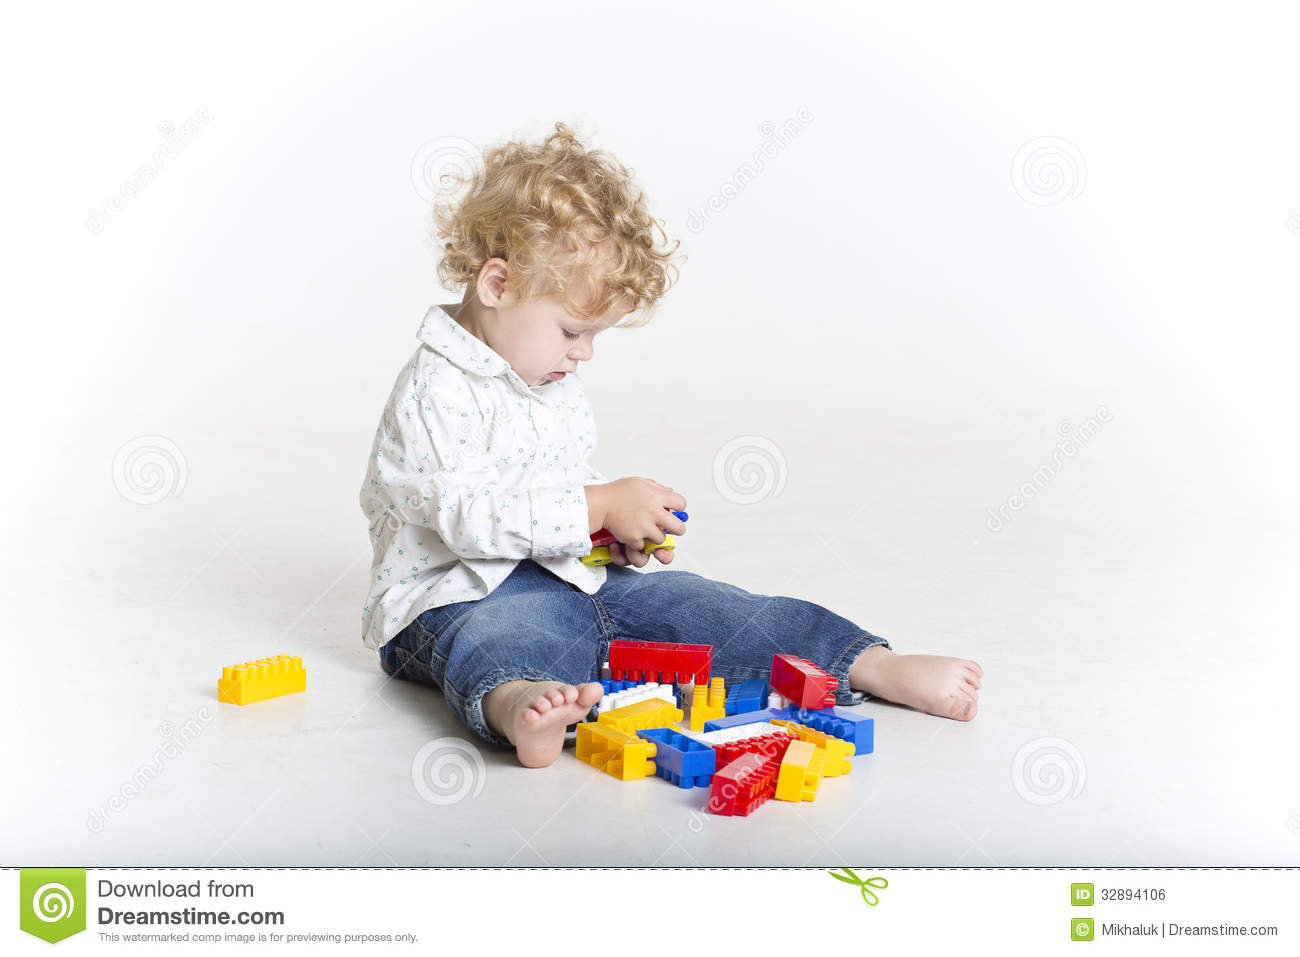 Cute Toddler Is Building With Legos Royalty Free Stock Image   Image